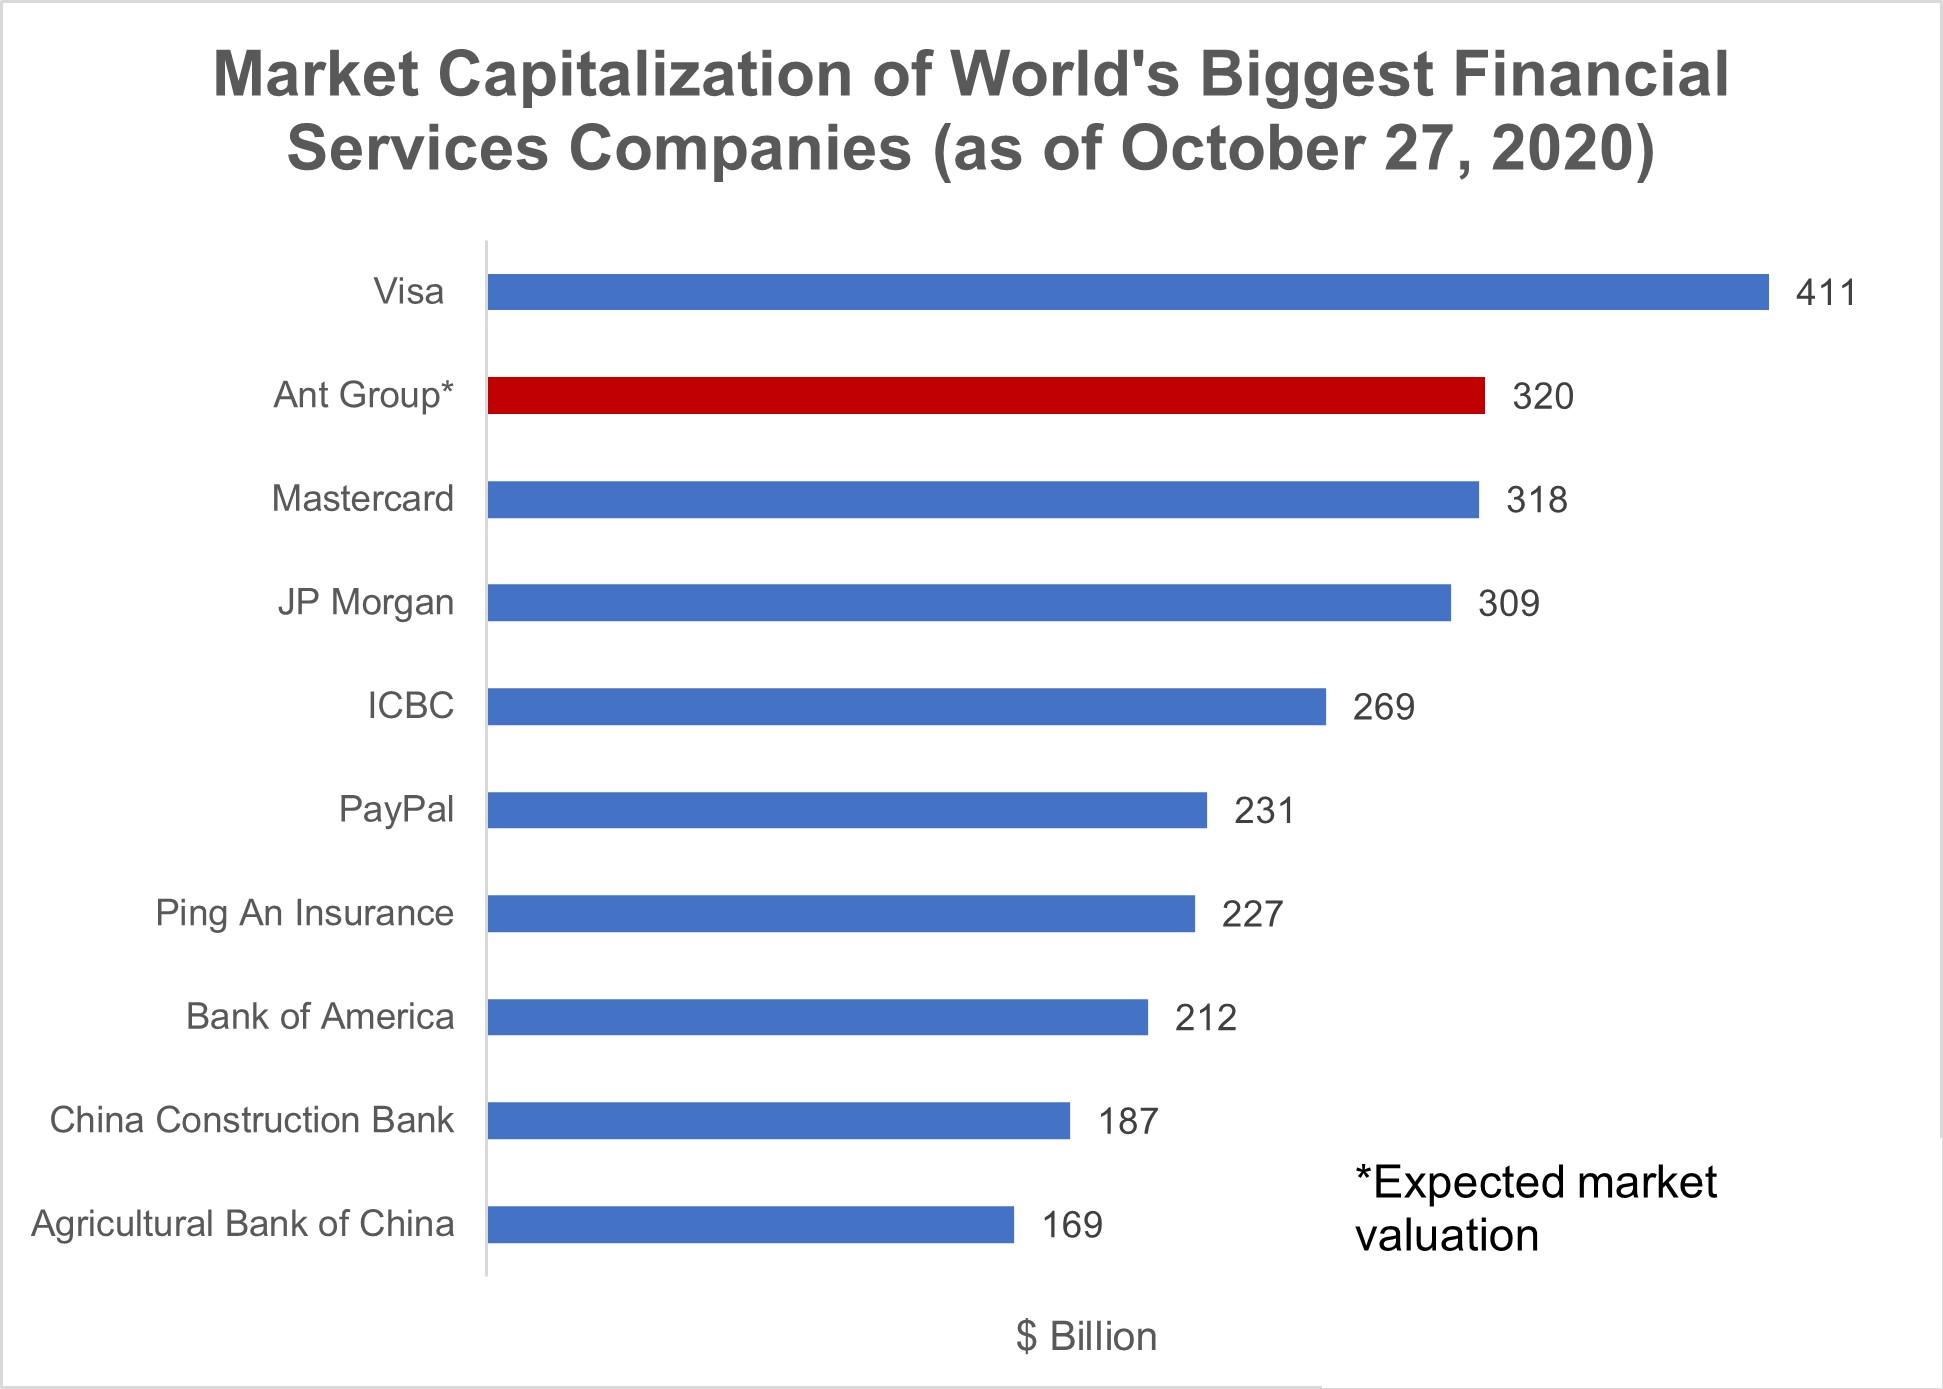 Market Capitalization of World's Biggest Financial Services Companies (as of October 27, 2020)